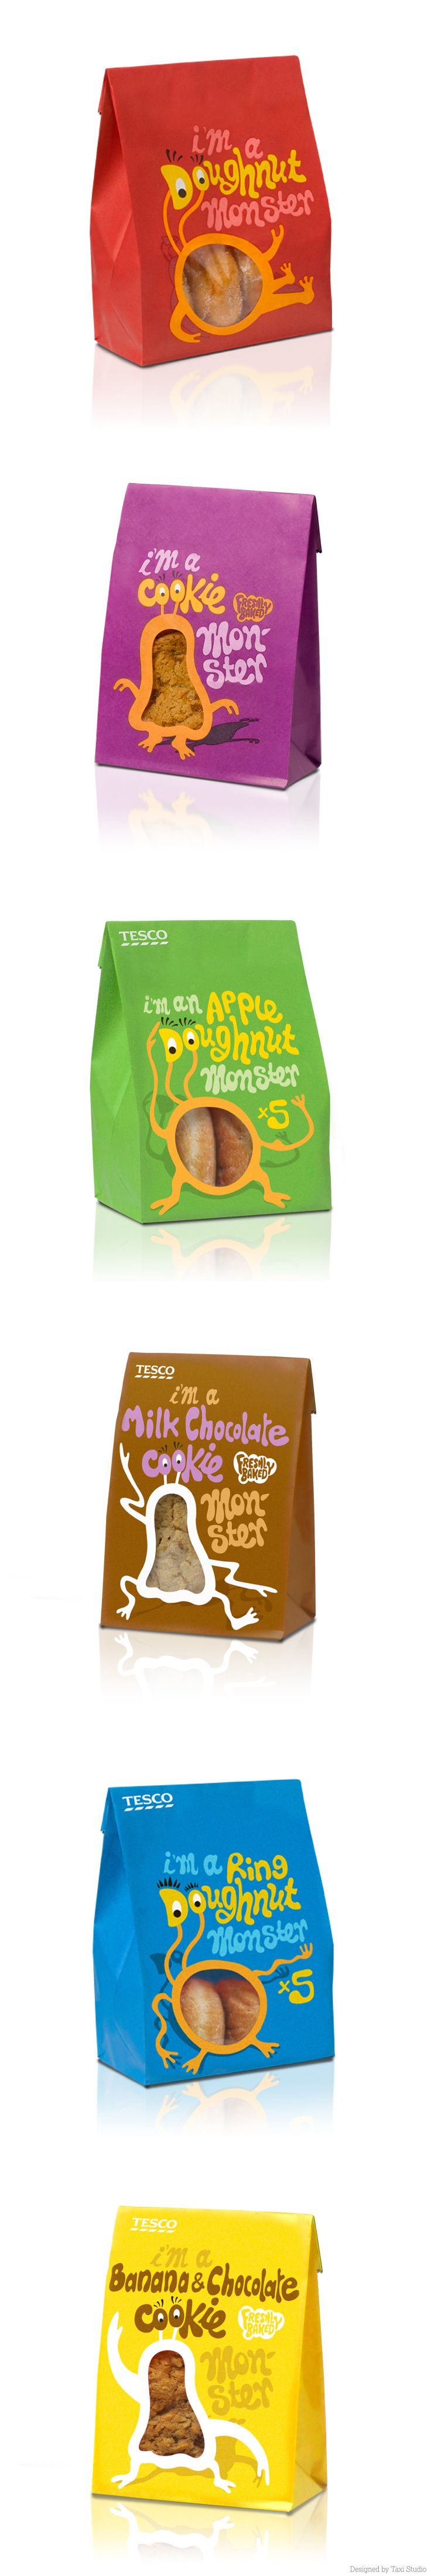 Tesco own brand packaging. Designed by Taxi Studio